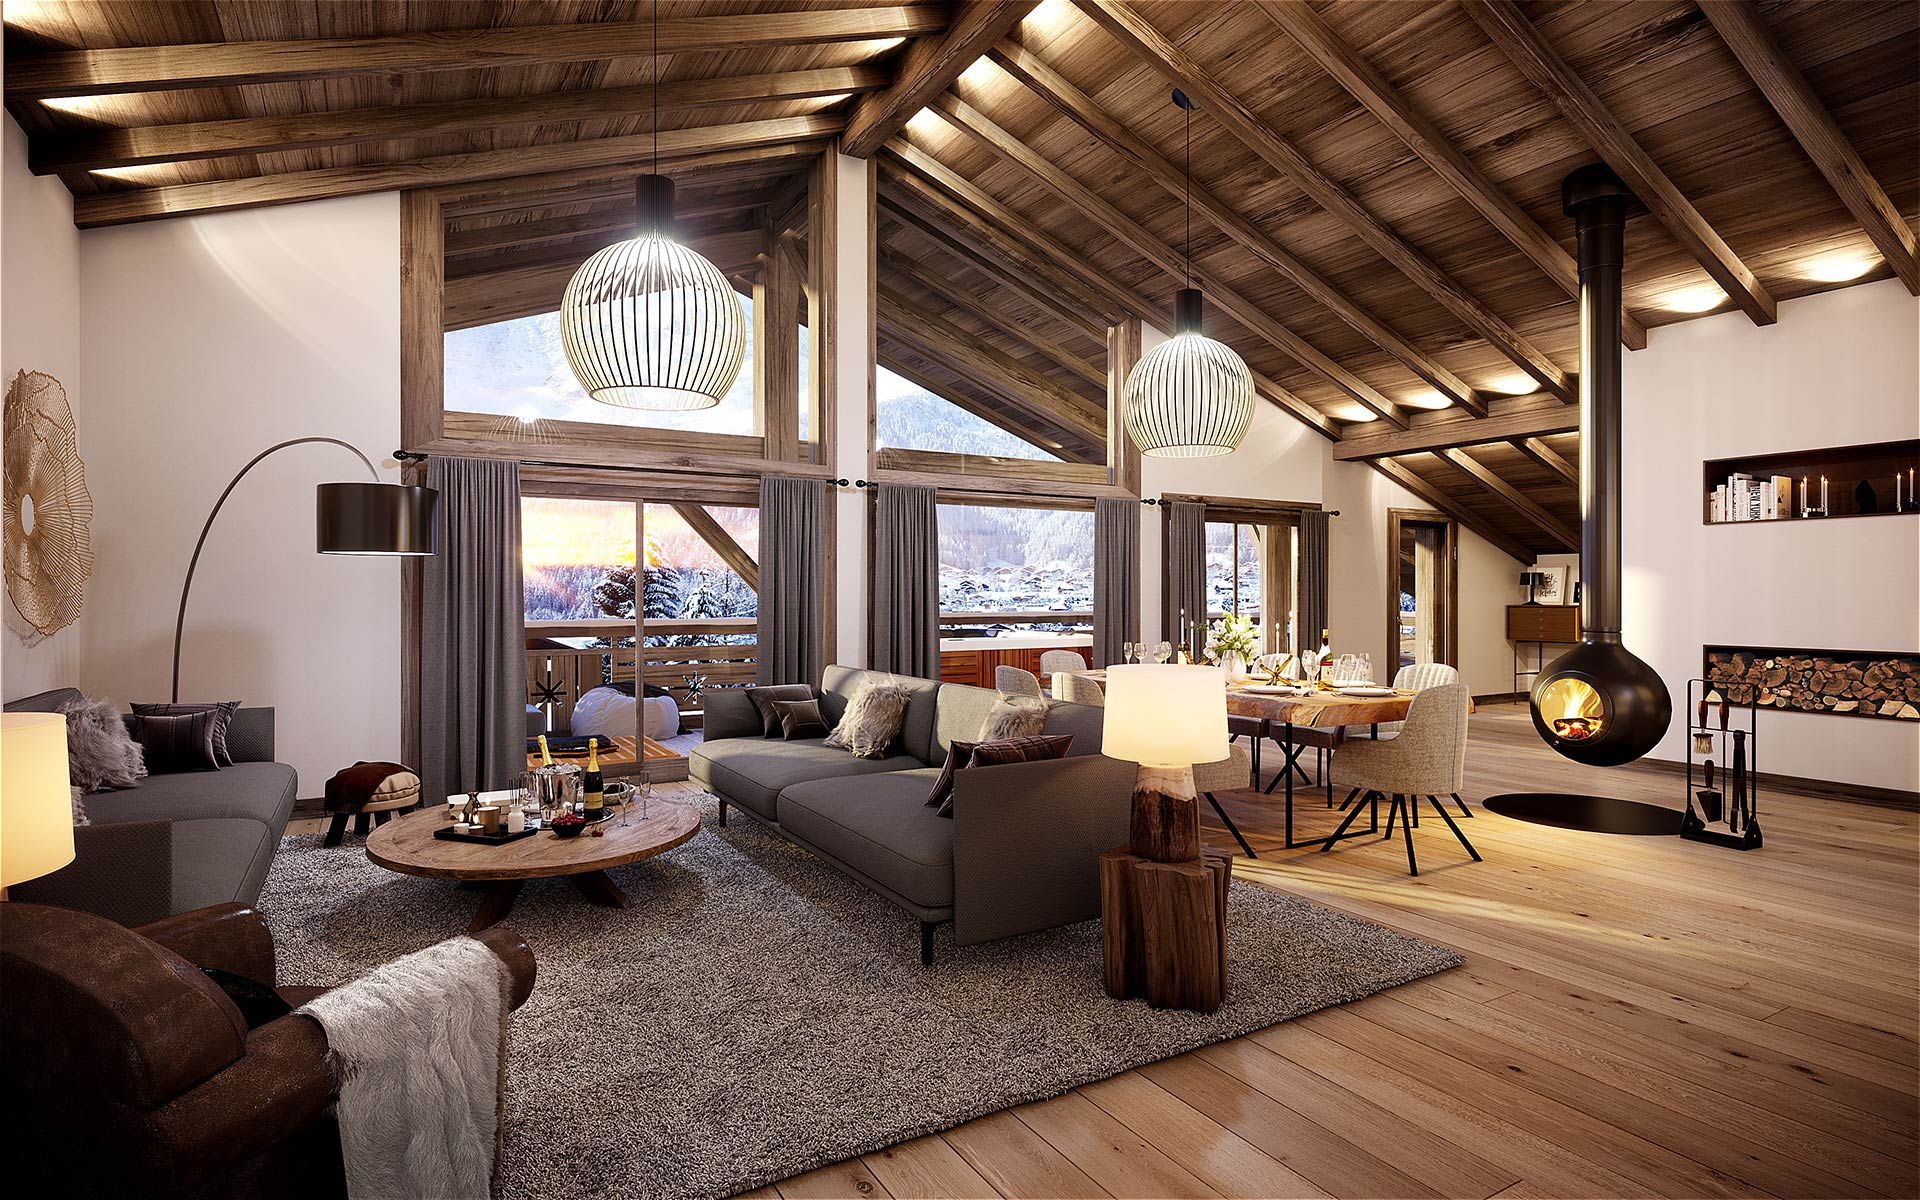 3D interior render of a luxury chalet apartment